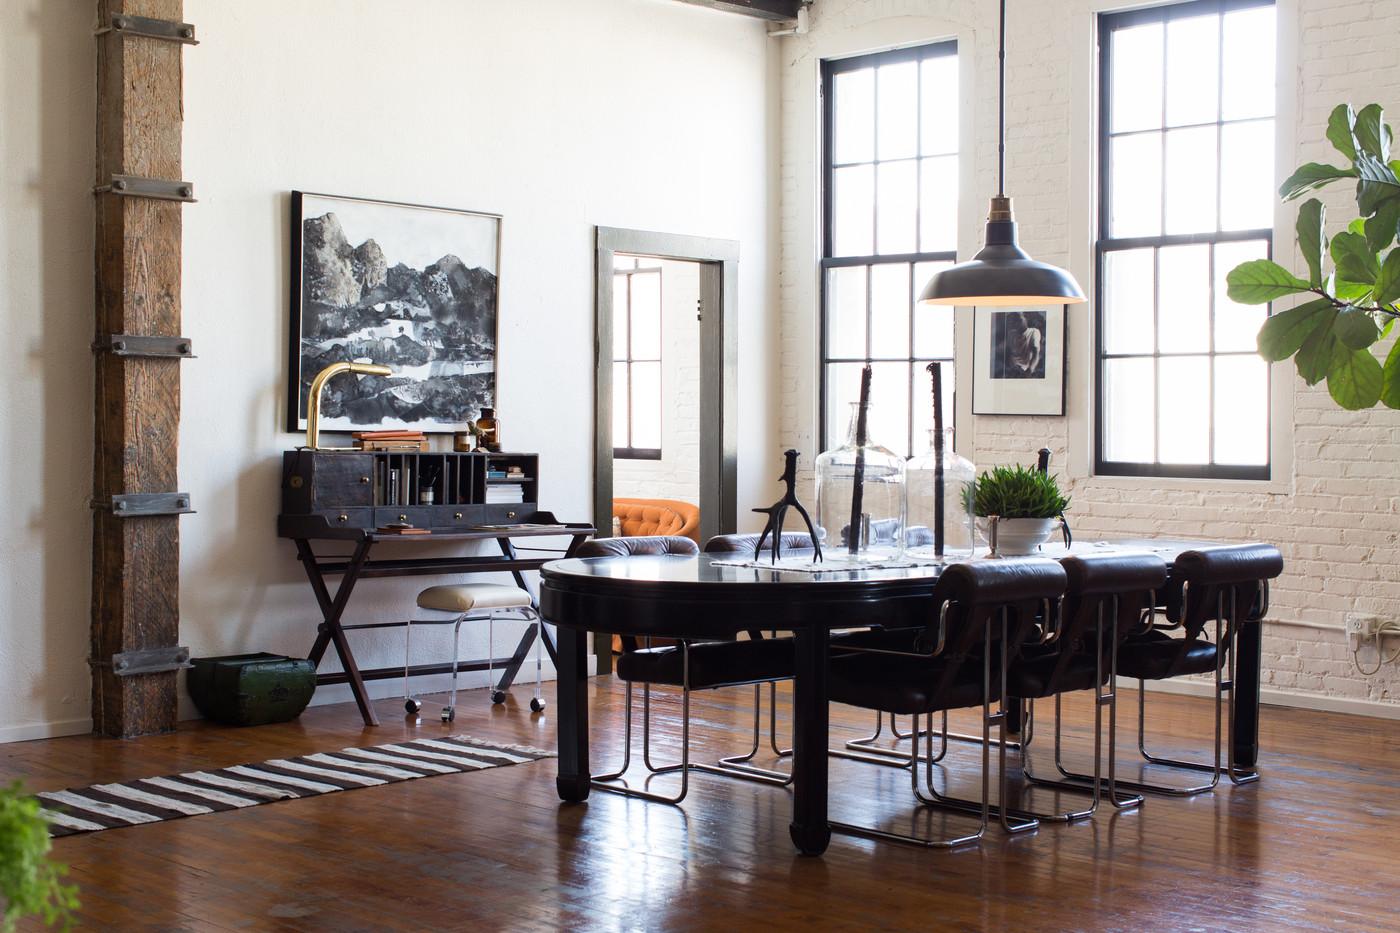 industrial dining table and chairs stool chair green vintage room photos 24 of 57